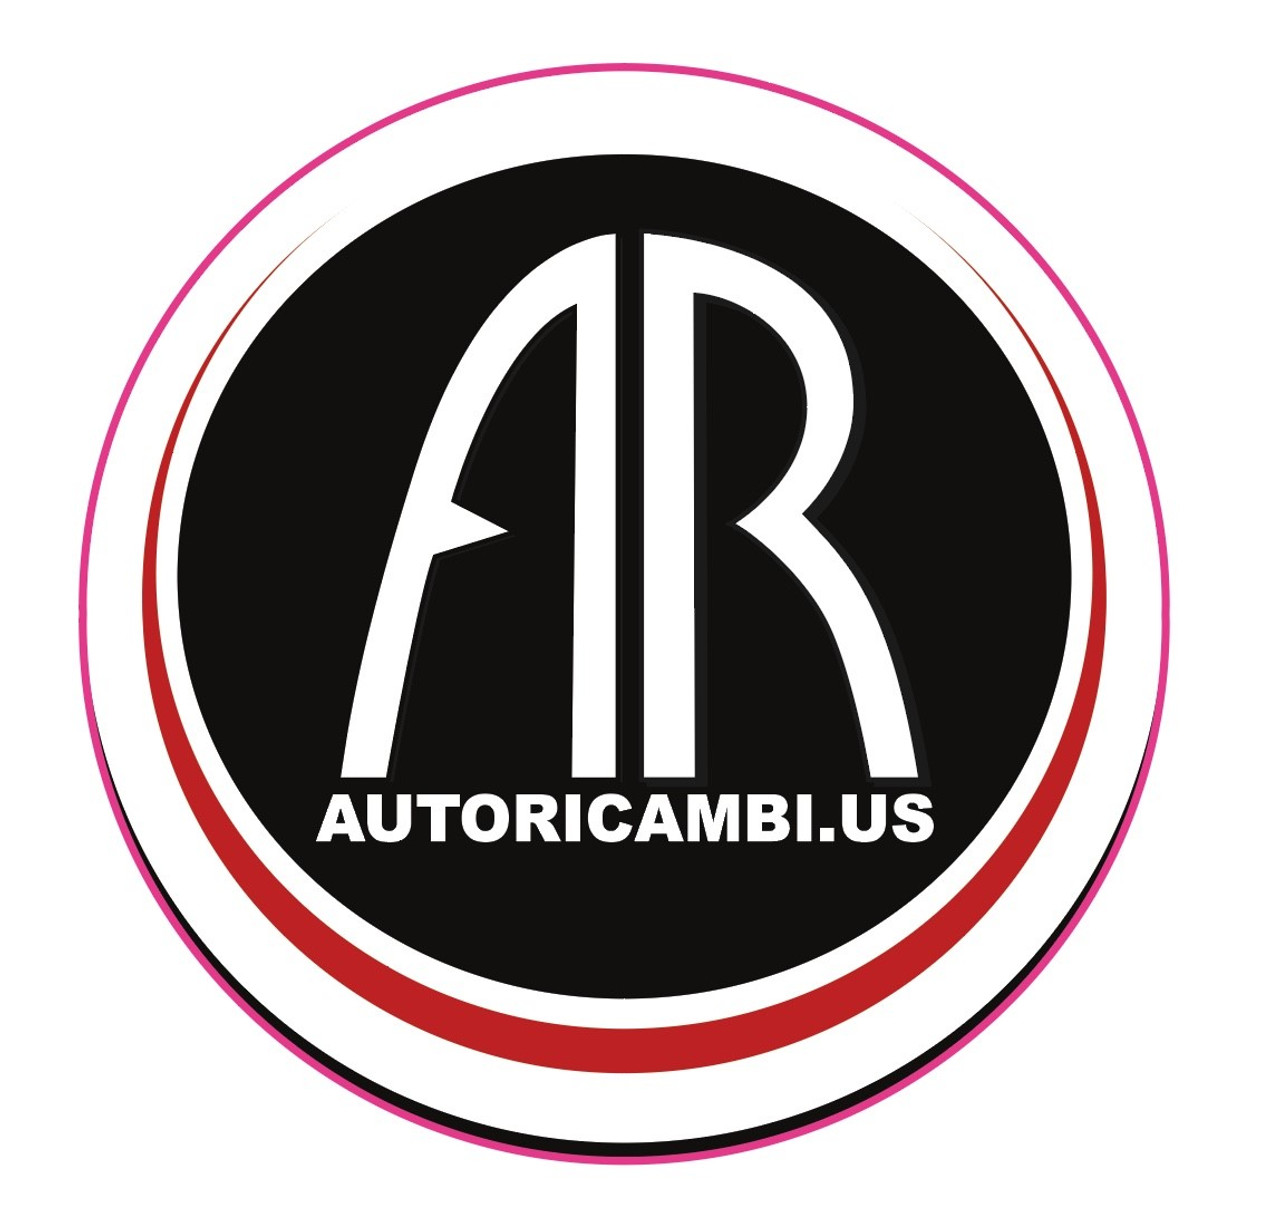 Auto Ricambi Round Logo Decal   Approximately 3 inches in diameter. Great for toolboxes to show everyone who the best source for FIAT 124 Spider parts is.